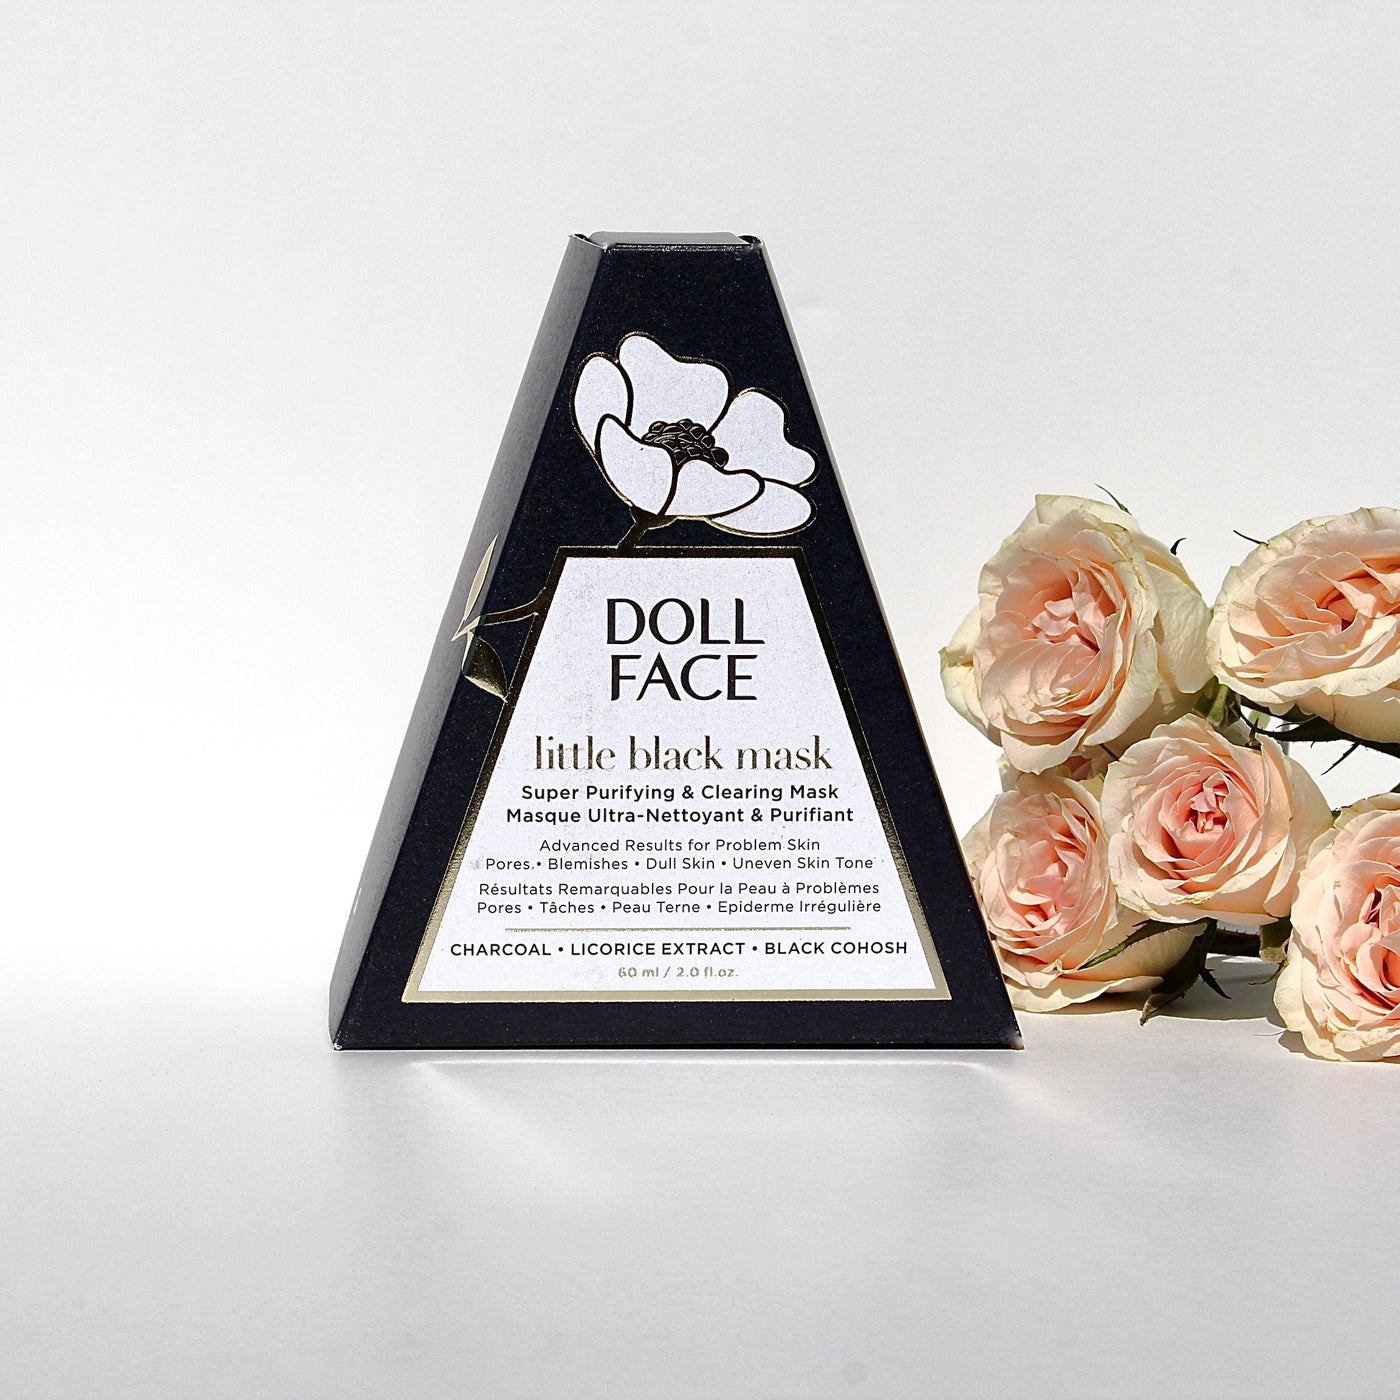 Nature21 Blvd_Doll Face LITTLE BLACK MASK Super Purifying & Clearing Mask